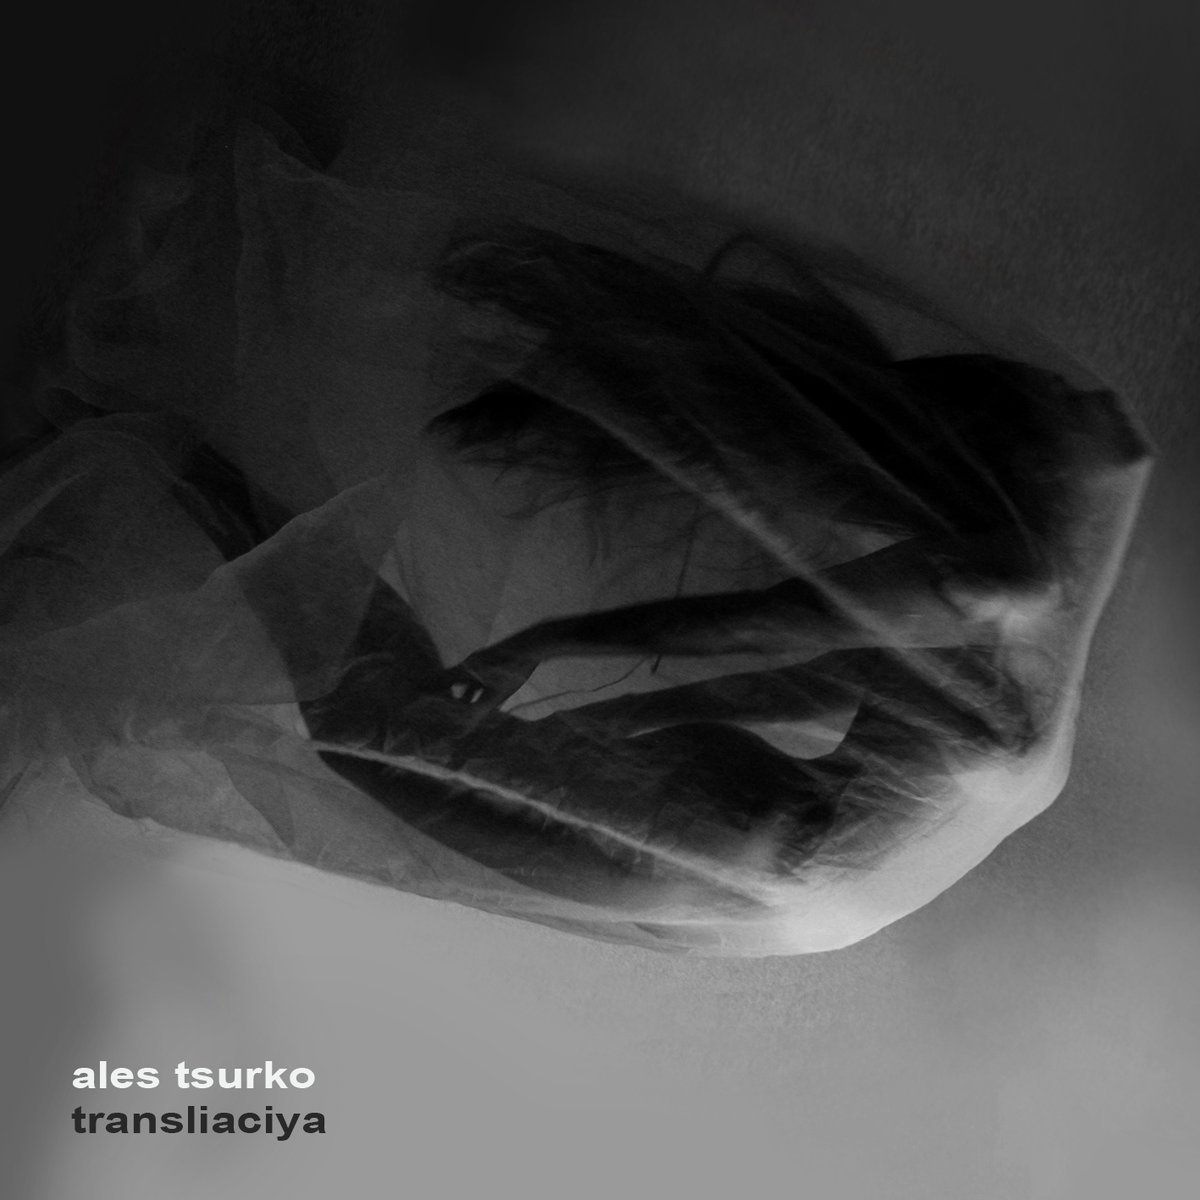 &quot;Everyone transmits force in their own way.&quot; LISTEN to &quot;Transliaciya&quot; – @Al_Tsurko&#39;s first album on Preserved Sound #microscale <br>http://pic.twitter.com/Pono2ewQqs